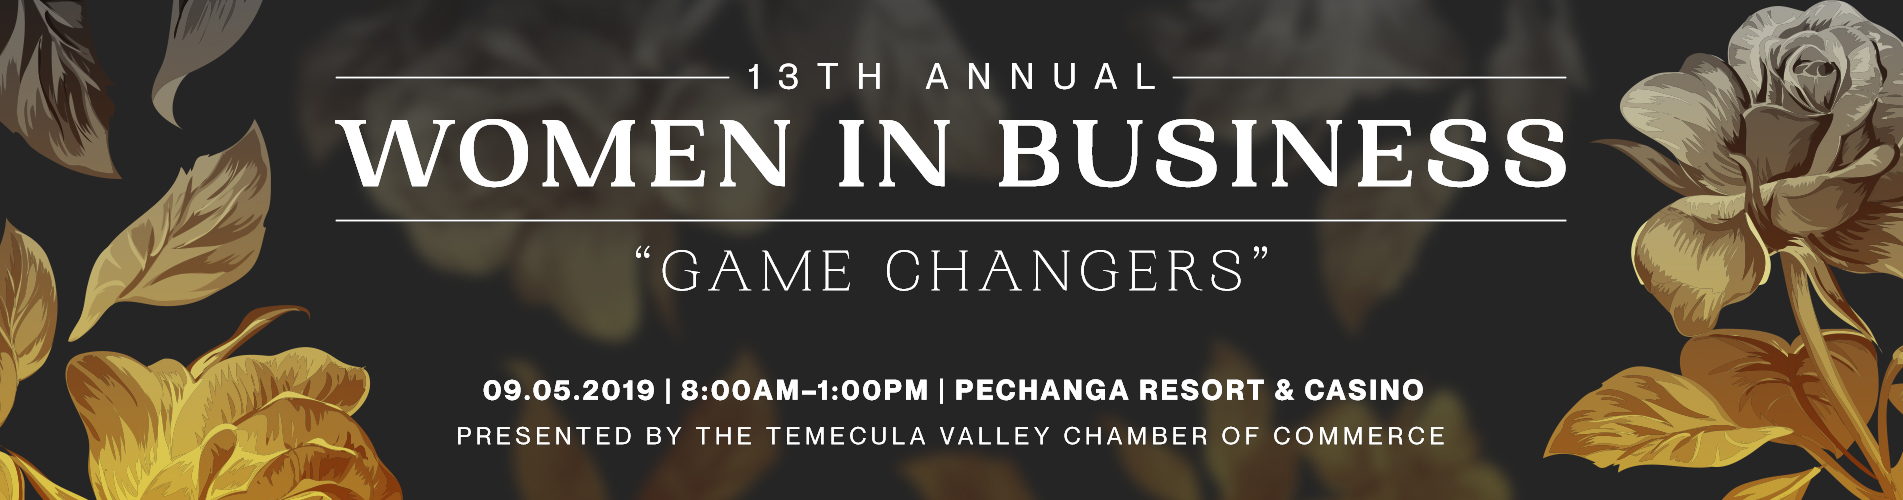 Women in Business @ Pechanga Resort & Casino